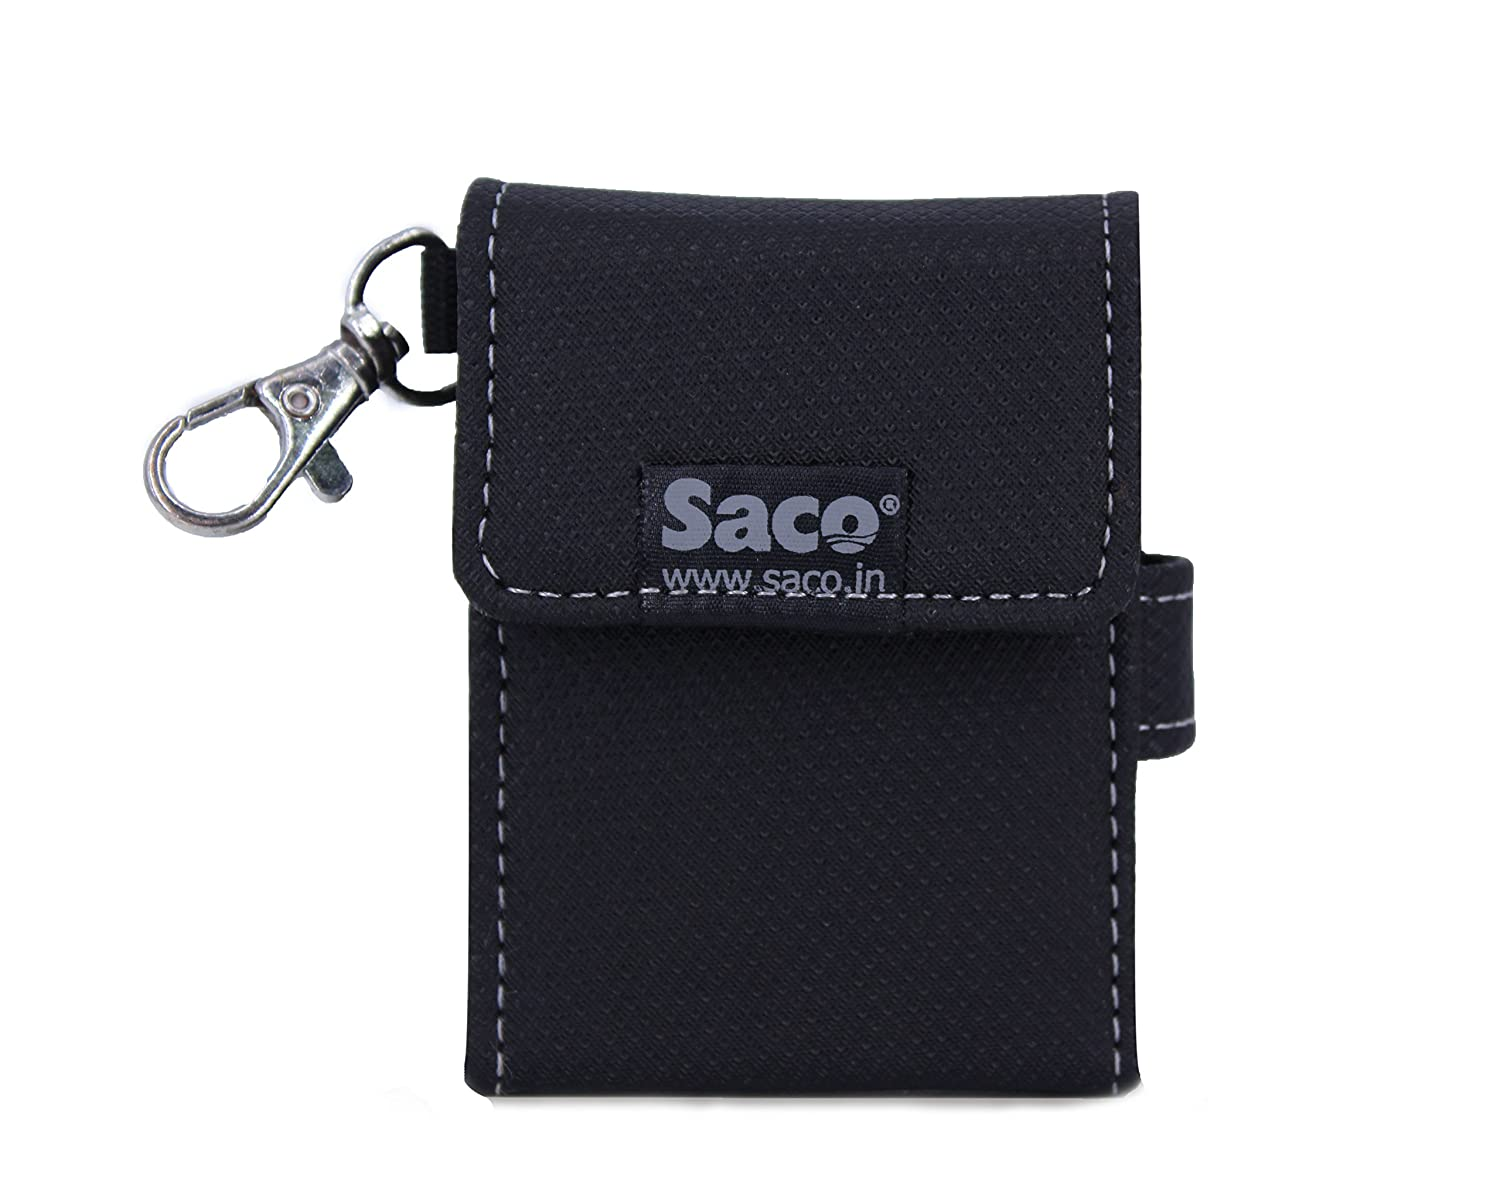 Saco T5 250GB Portable Solid State Drive Plug and Play Case Pouch.